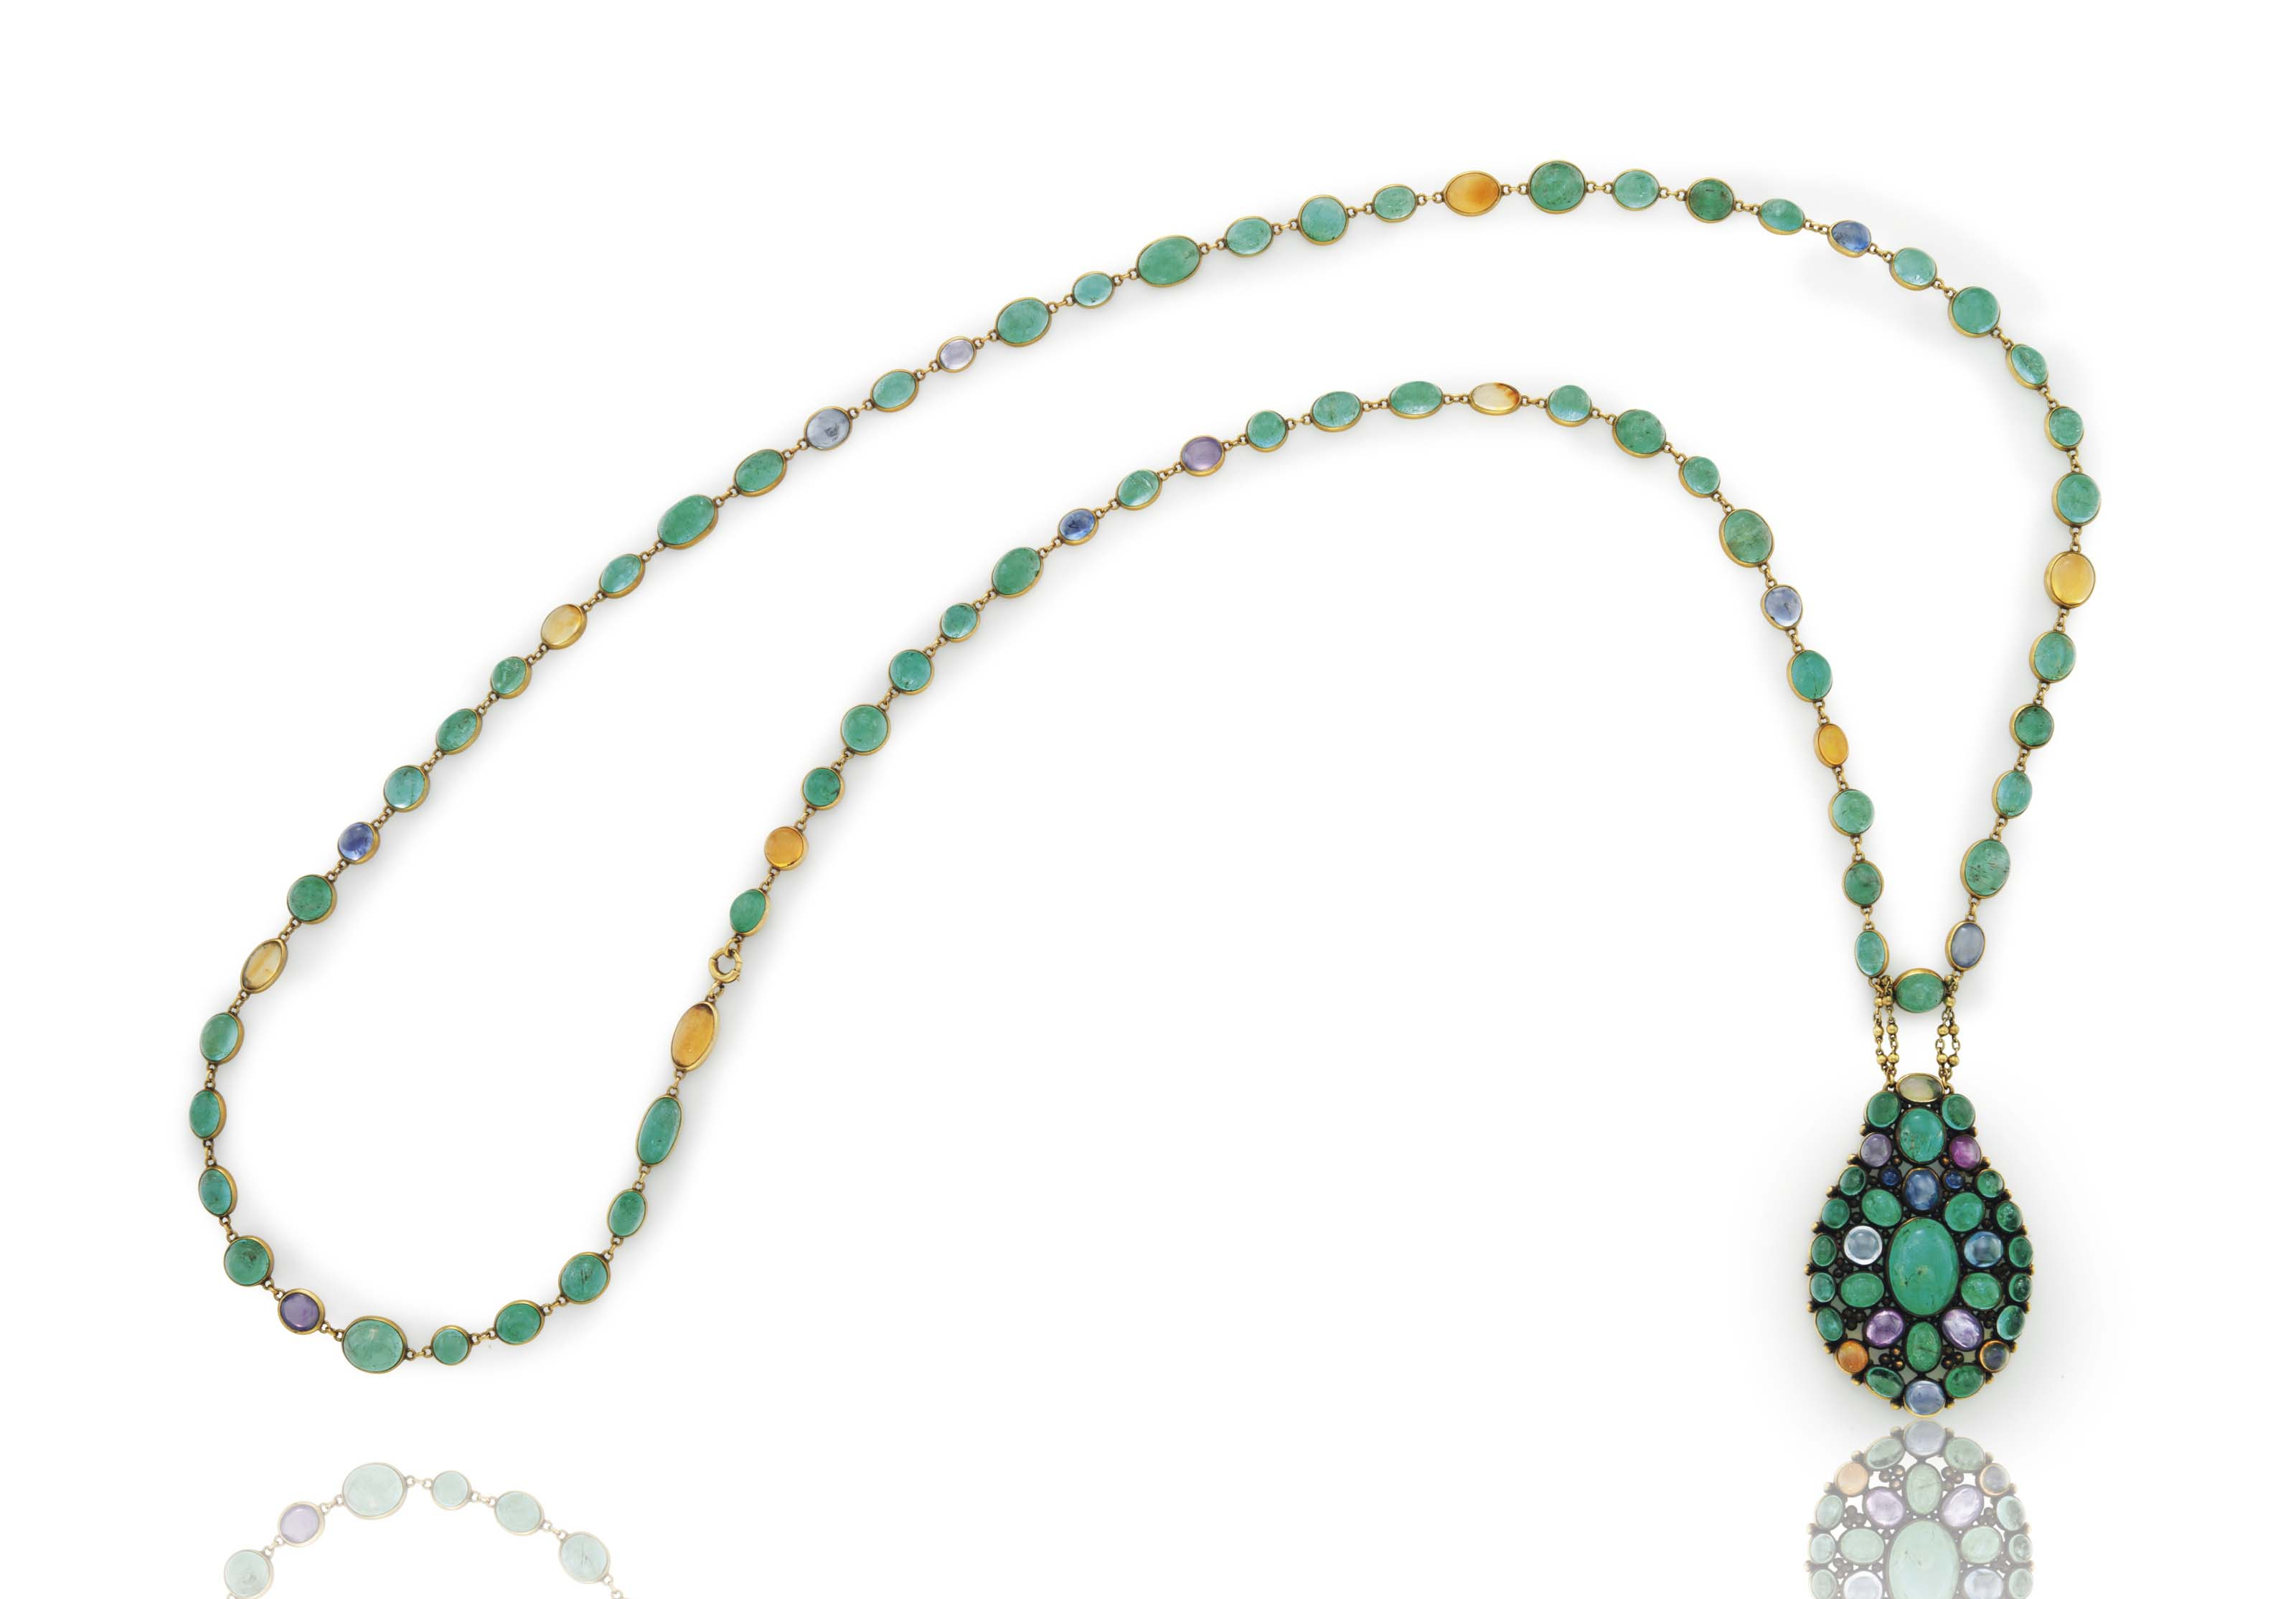 A CABOCHON EMERALD, SAPPHIRE, COLORED SAPPHIRE AND FIRE OPAL PENDANT NECKLACE, BY LOUIS COMFORT TIFFANY, TIFFANY & CO.